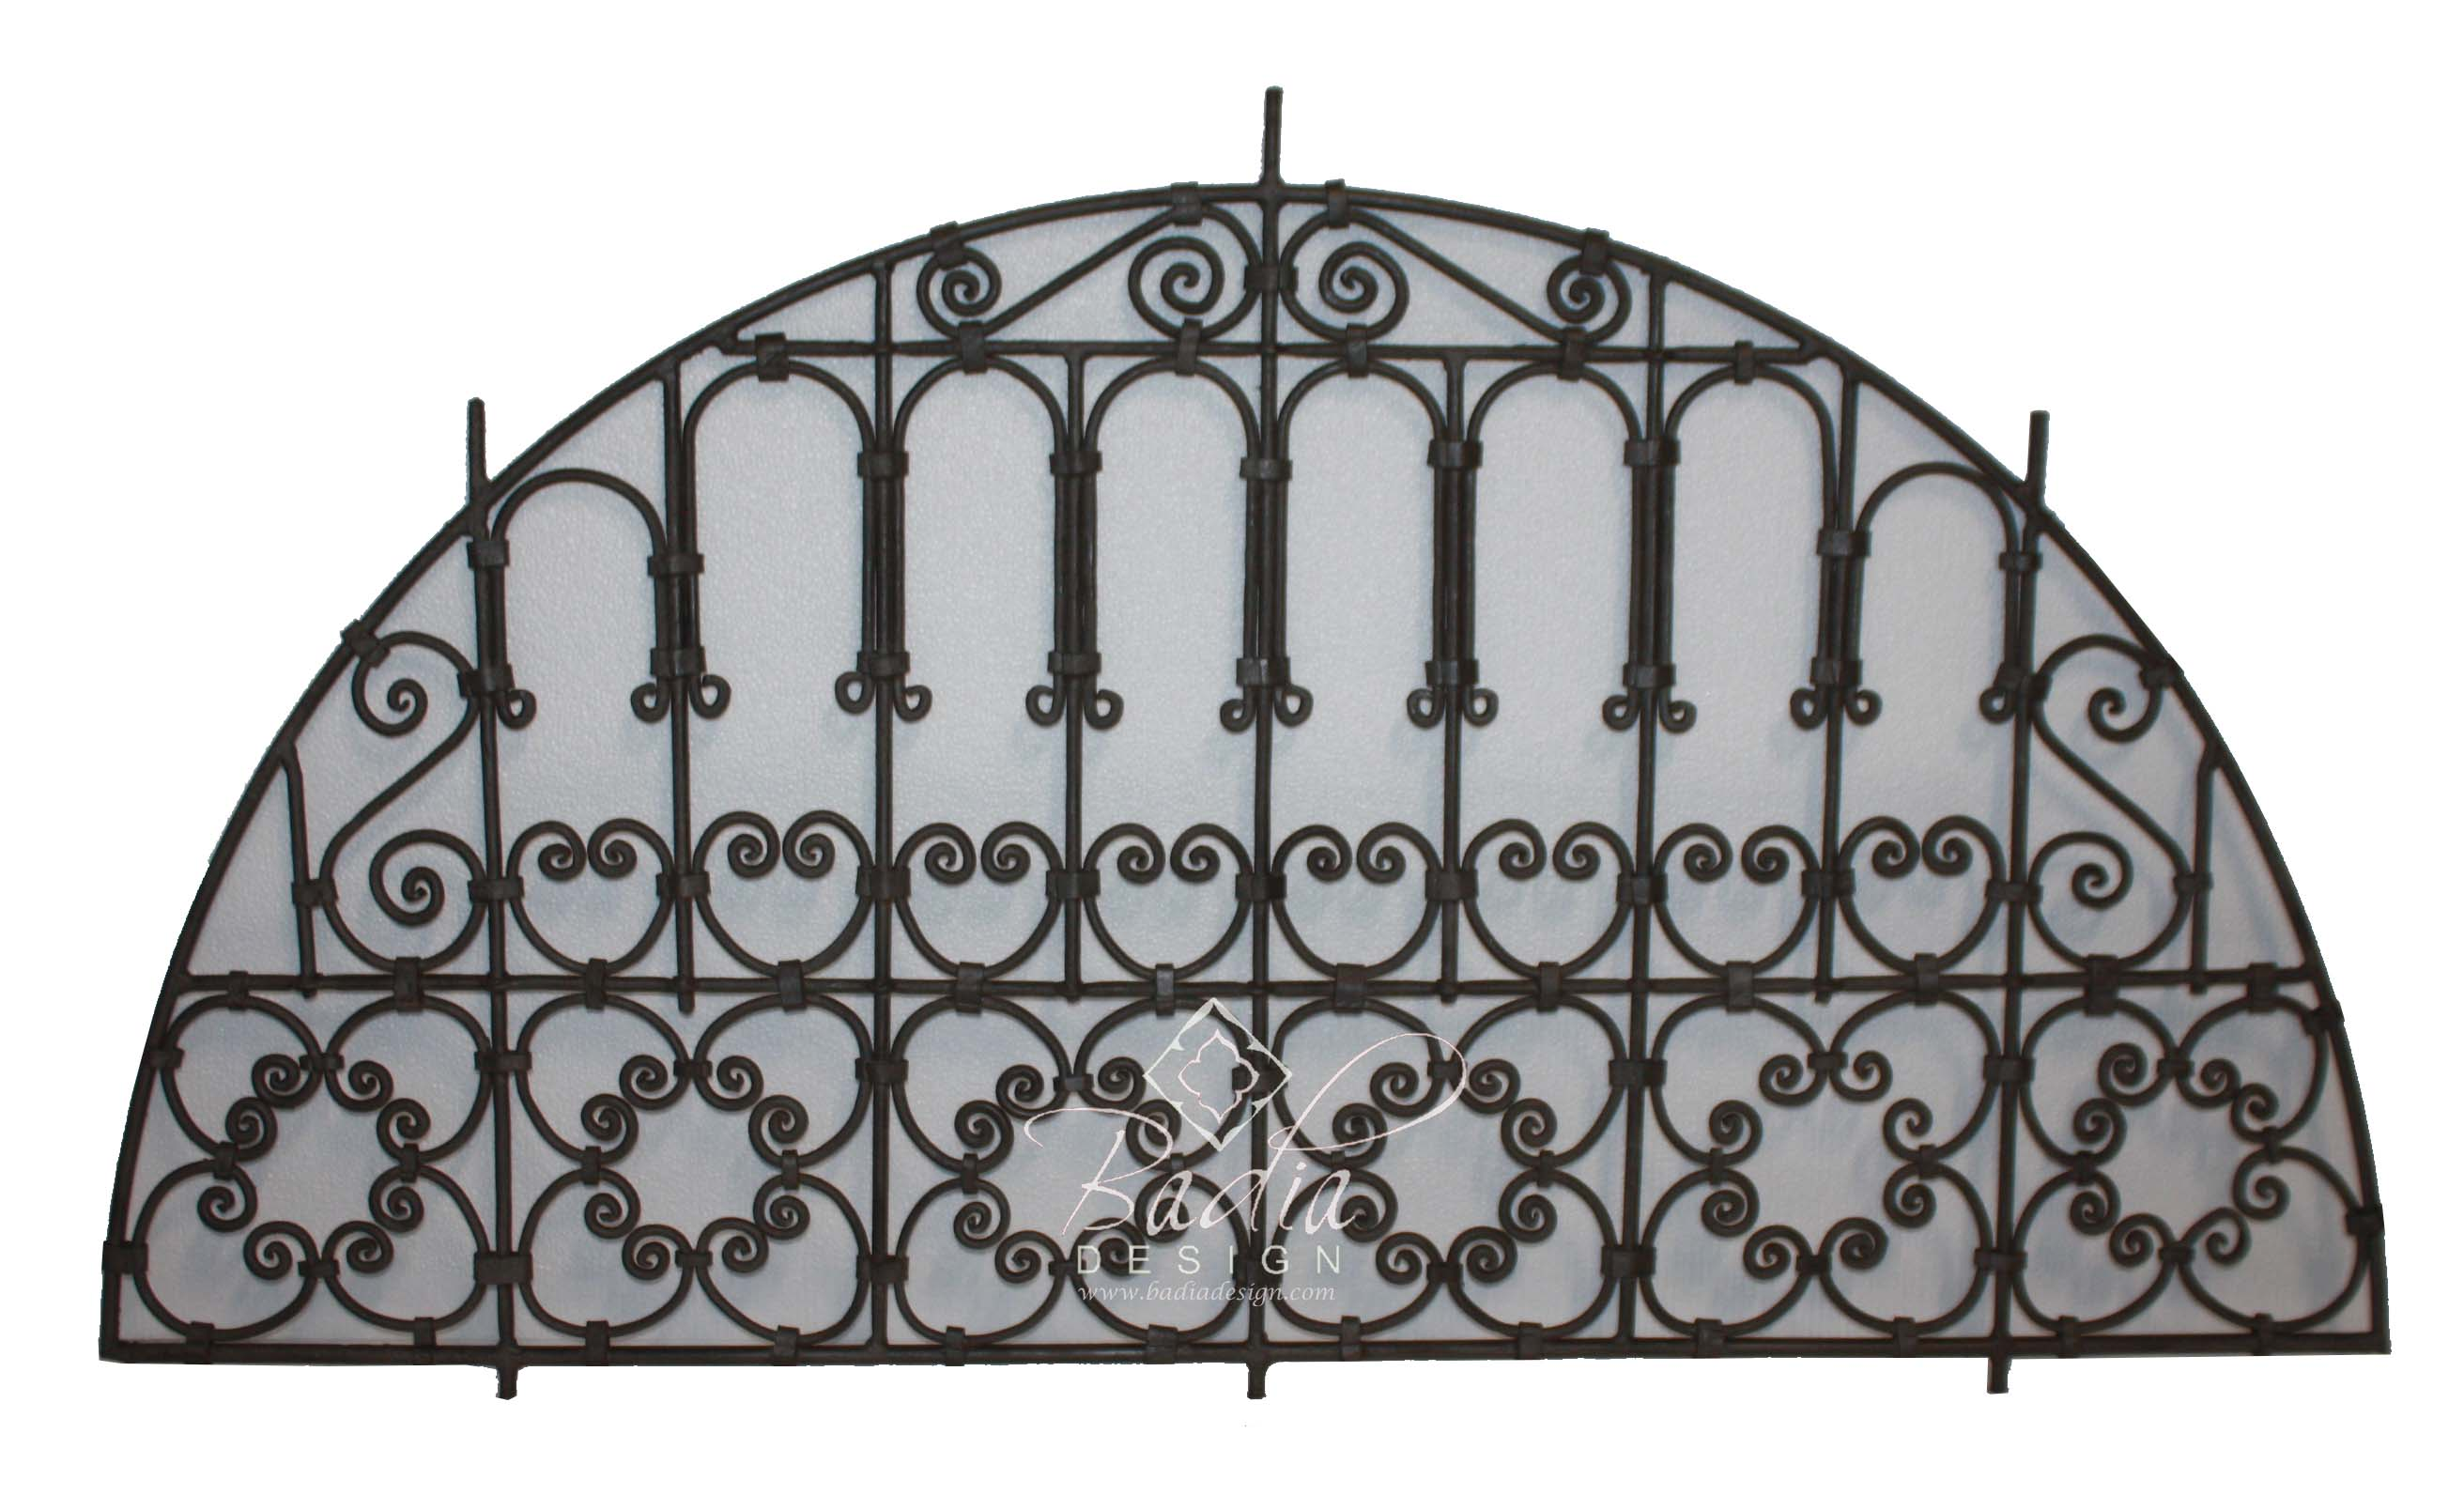 moroccan-half-moon-shaped-wrought-iron-panel-ip018.jpg